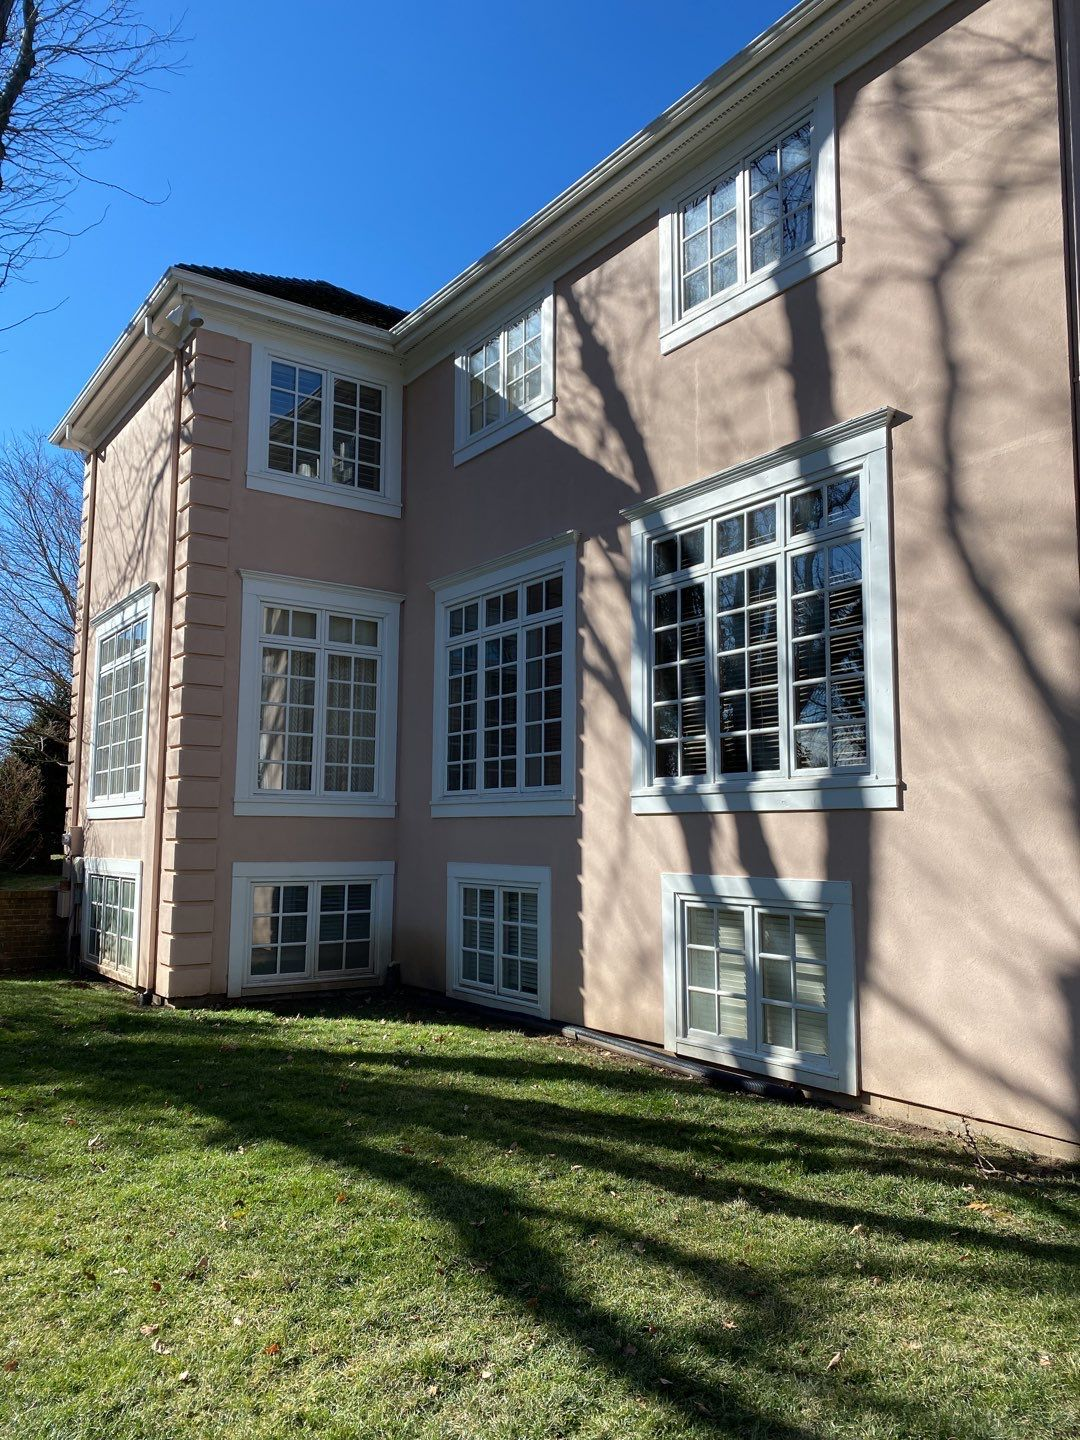 lg 3 - How Much Will It Cost to Paint my Exterior - Overland Park, Lee's Summit, Kansas City Painting